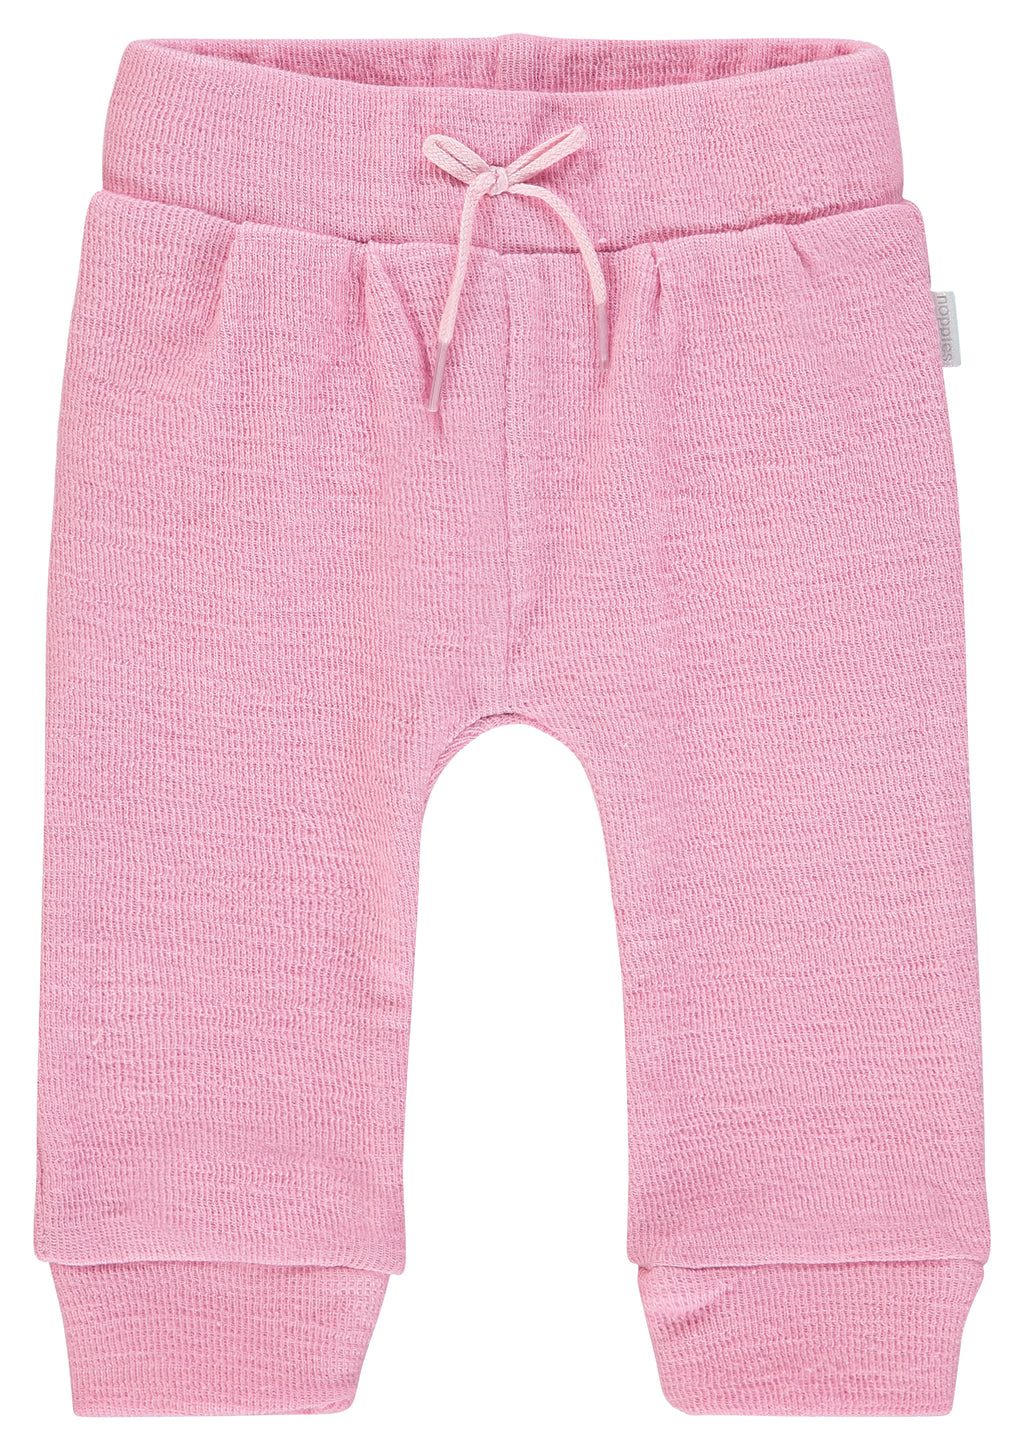 Noppies : Broek Parole Broek Outlet Kamélie.be